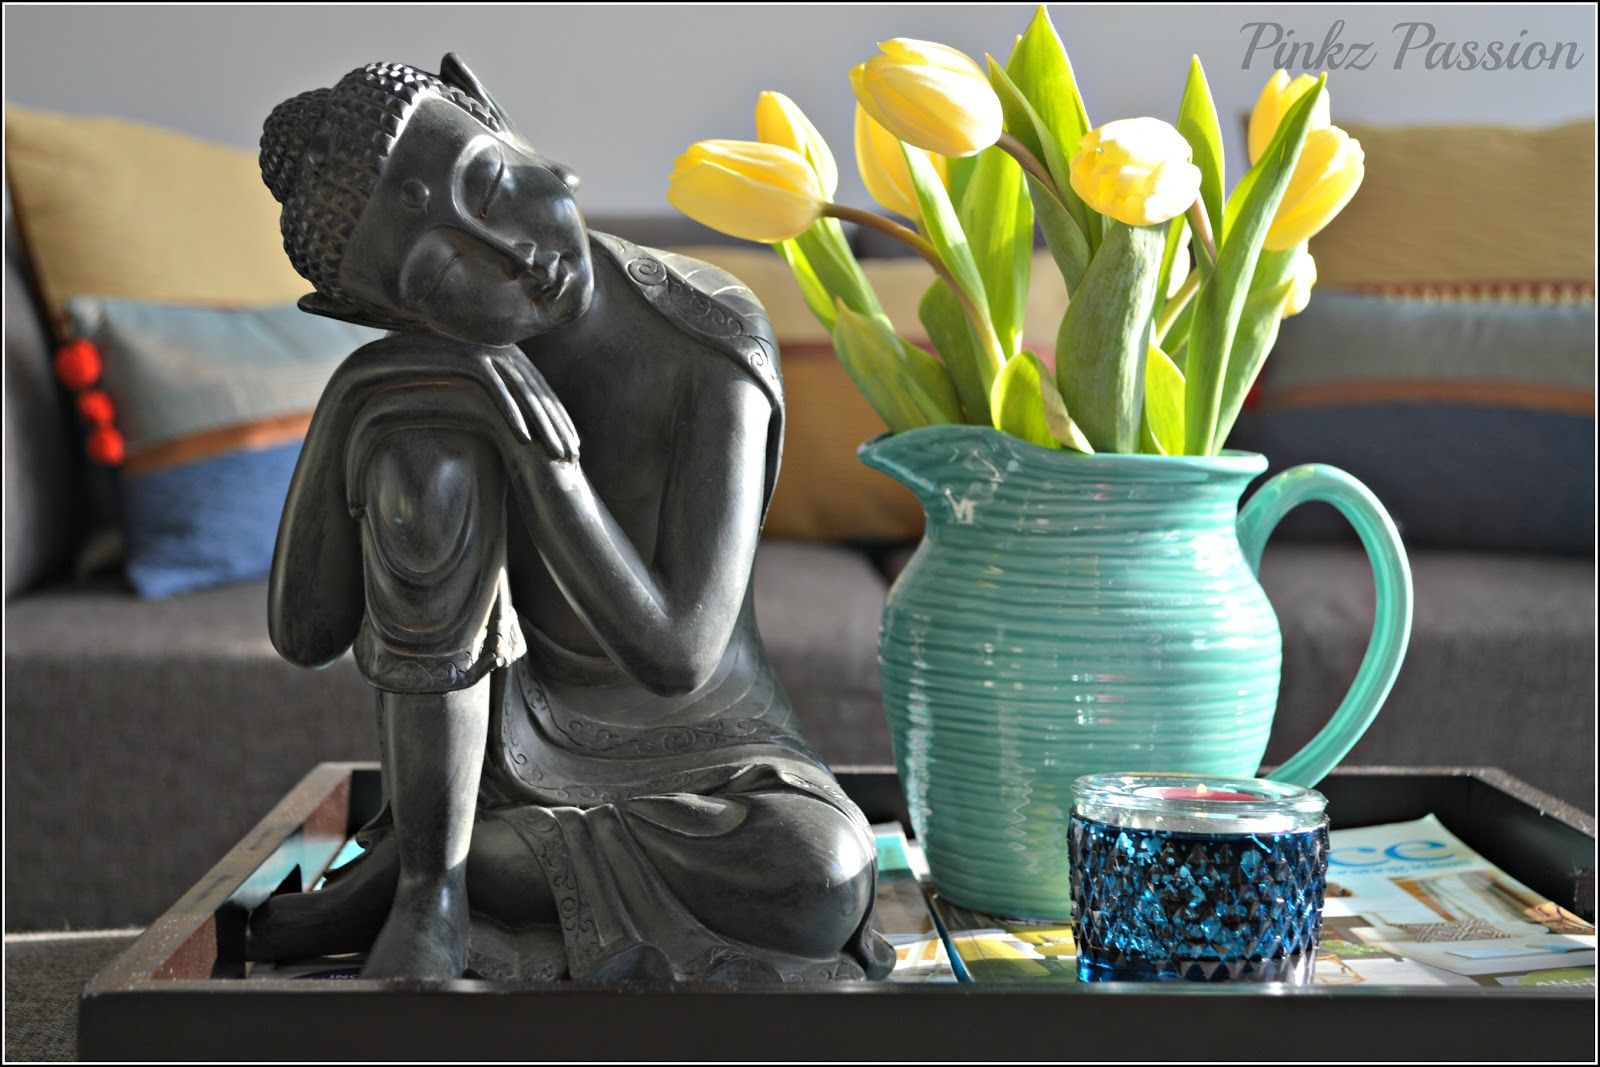 Pinkz Passion : Desi Twists on Coffee Table #buddhadecor